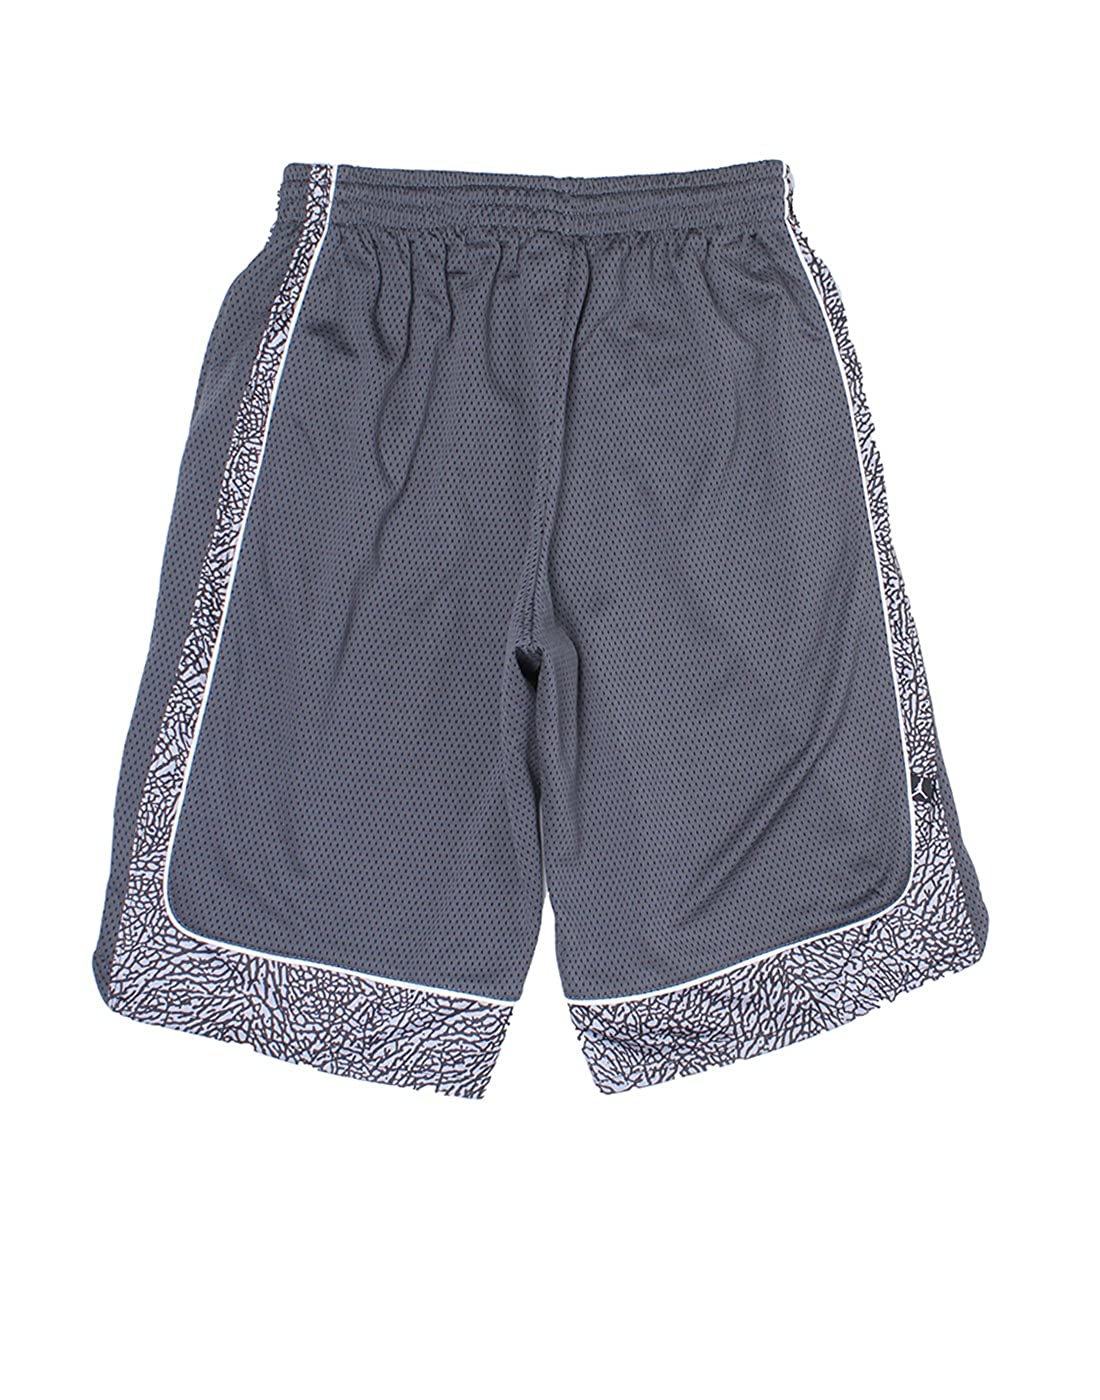 ae7f889c15 Jordan Boys Grey Solid Shorts (_617846661052_Black_14 - 15 Years_):  Amazon.in: Clothing & Accessories